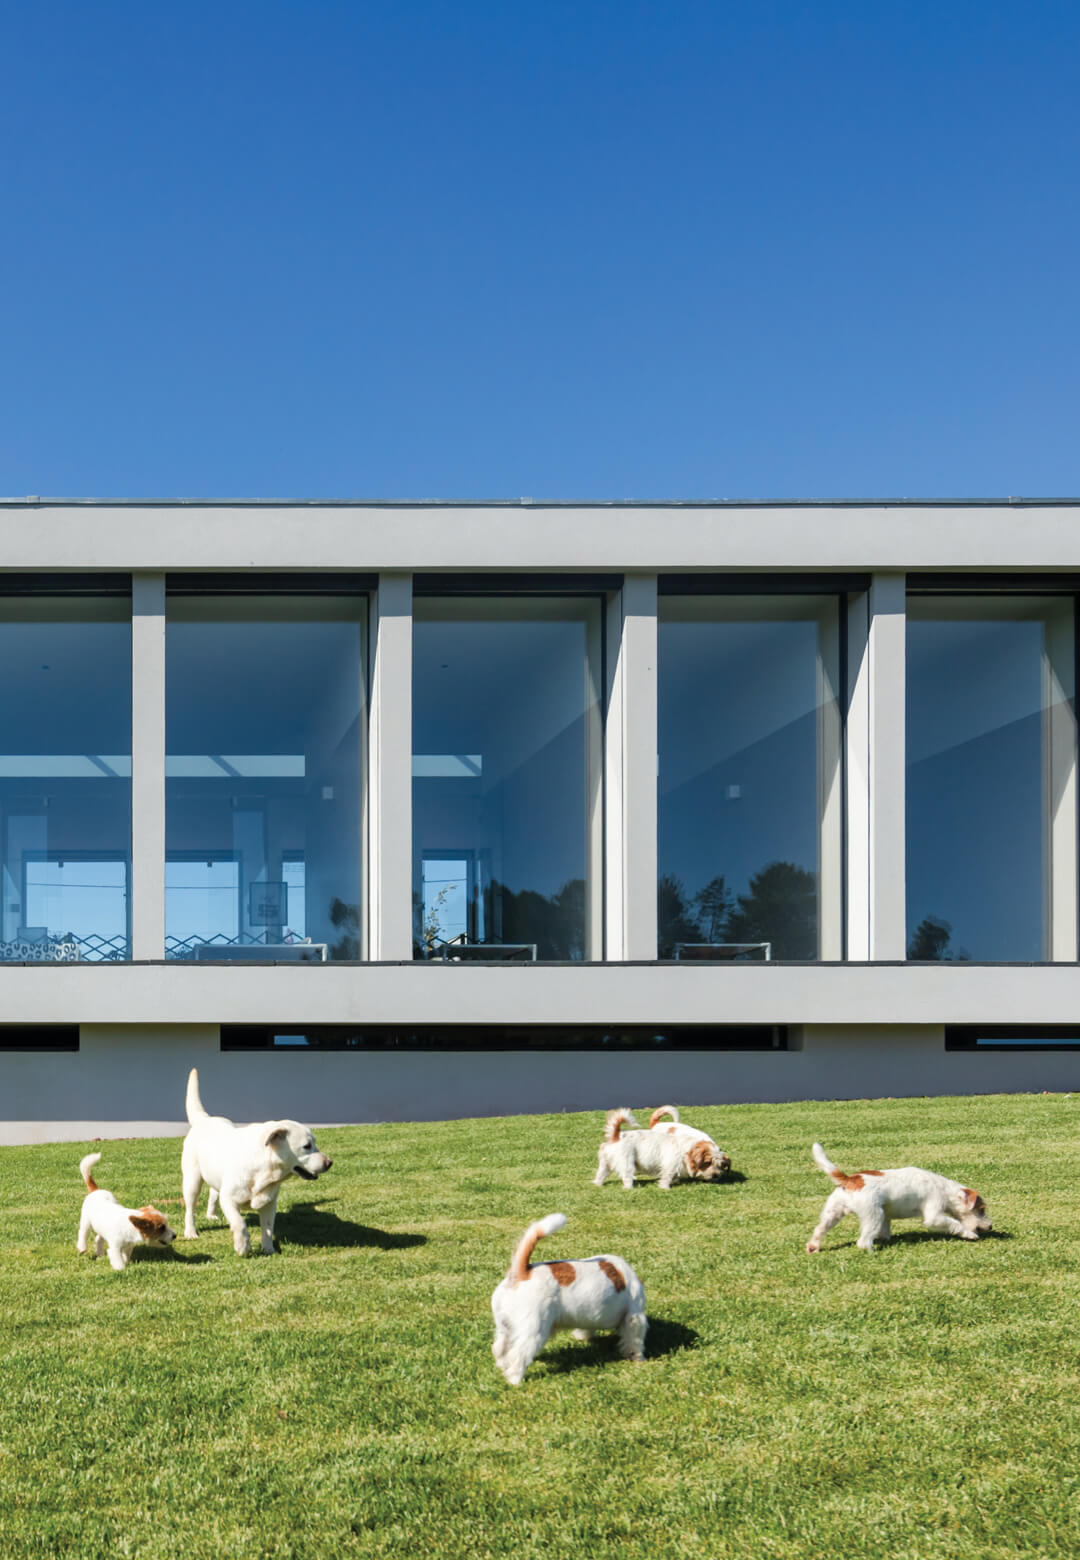 Canine and Feline Hotel by Raulino Silva in Parada, Portugal | STIRworld